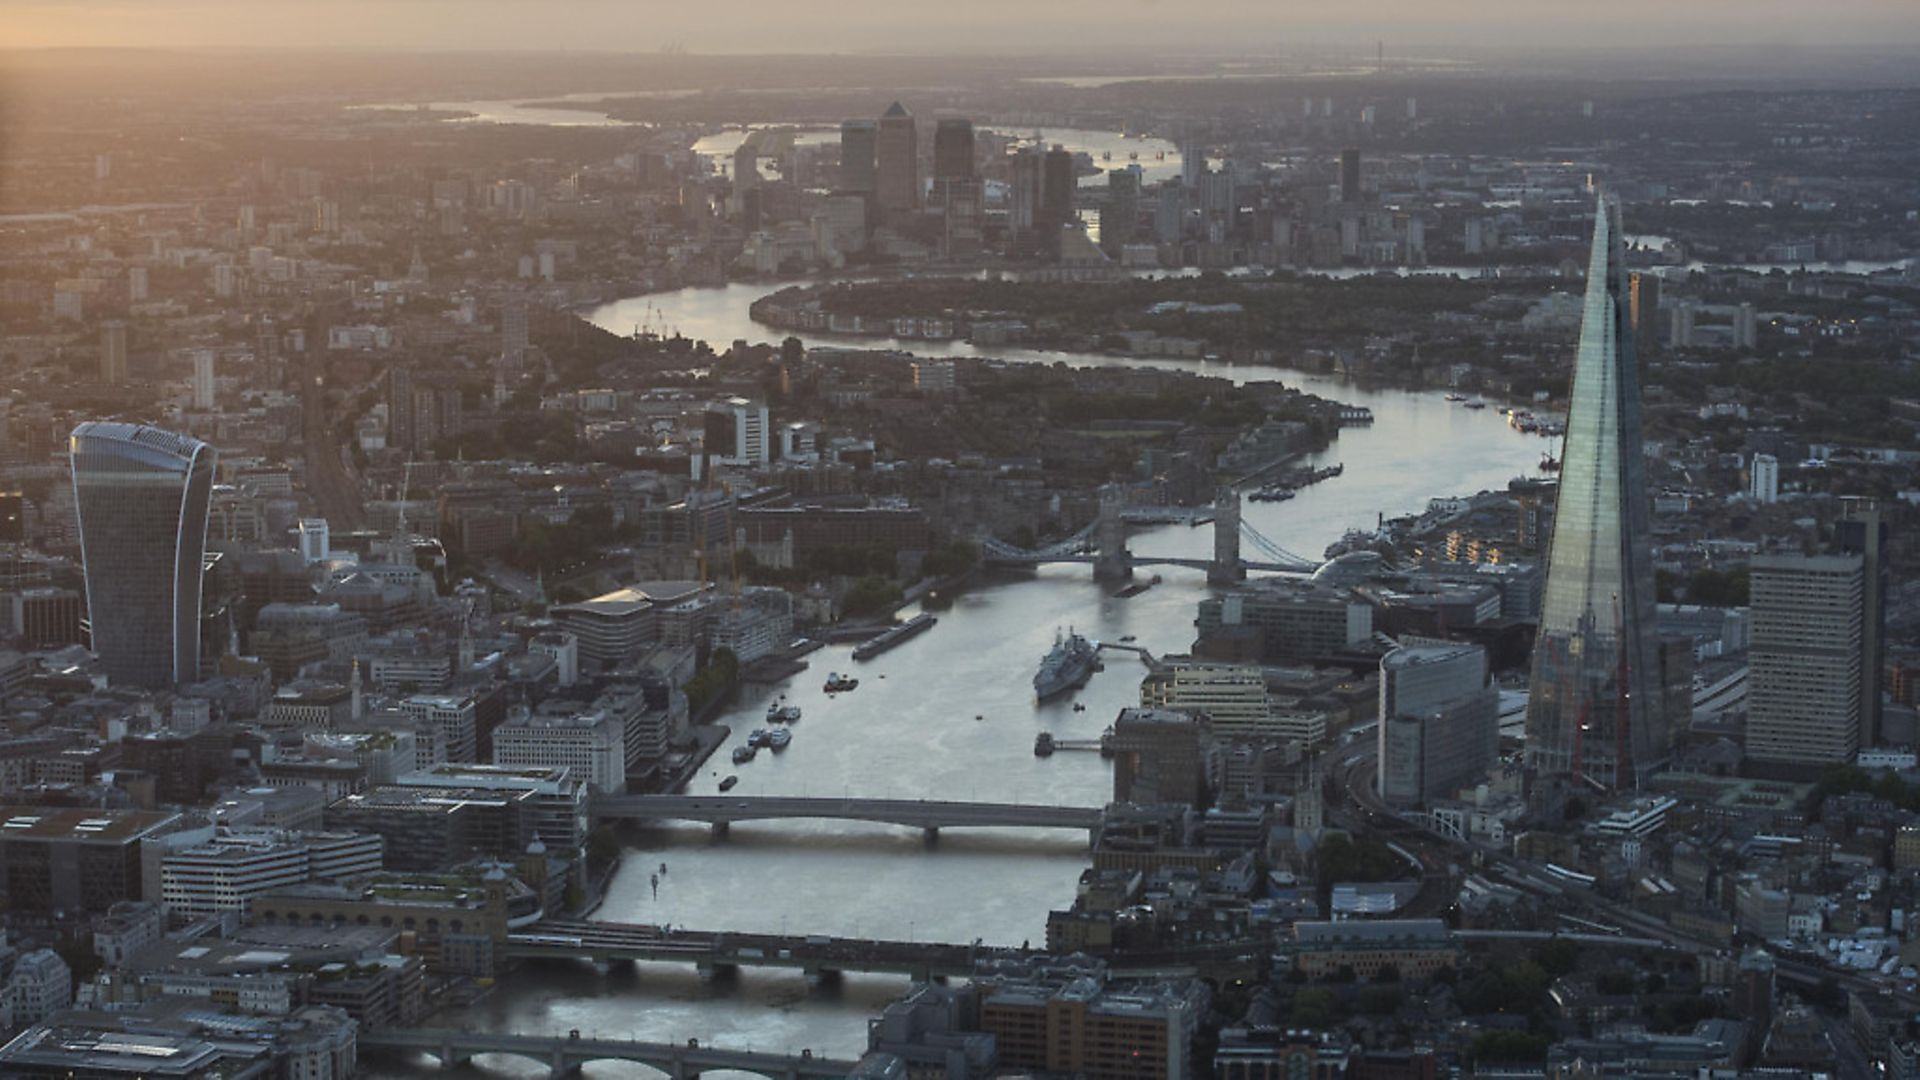 General aerial view of The Shard, Tower Bridge, 20 Fenchurch street, central London and Canary Wharf. Picture: PA - Credit: PA Wire/PA Images